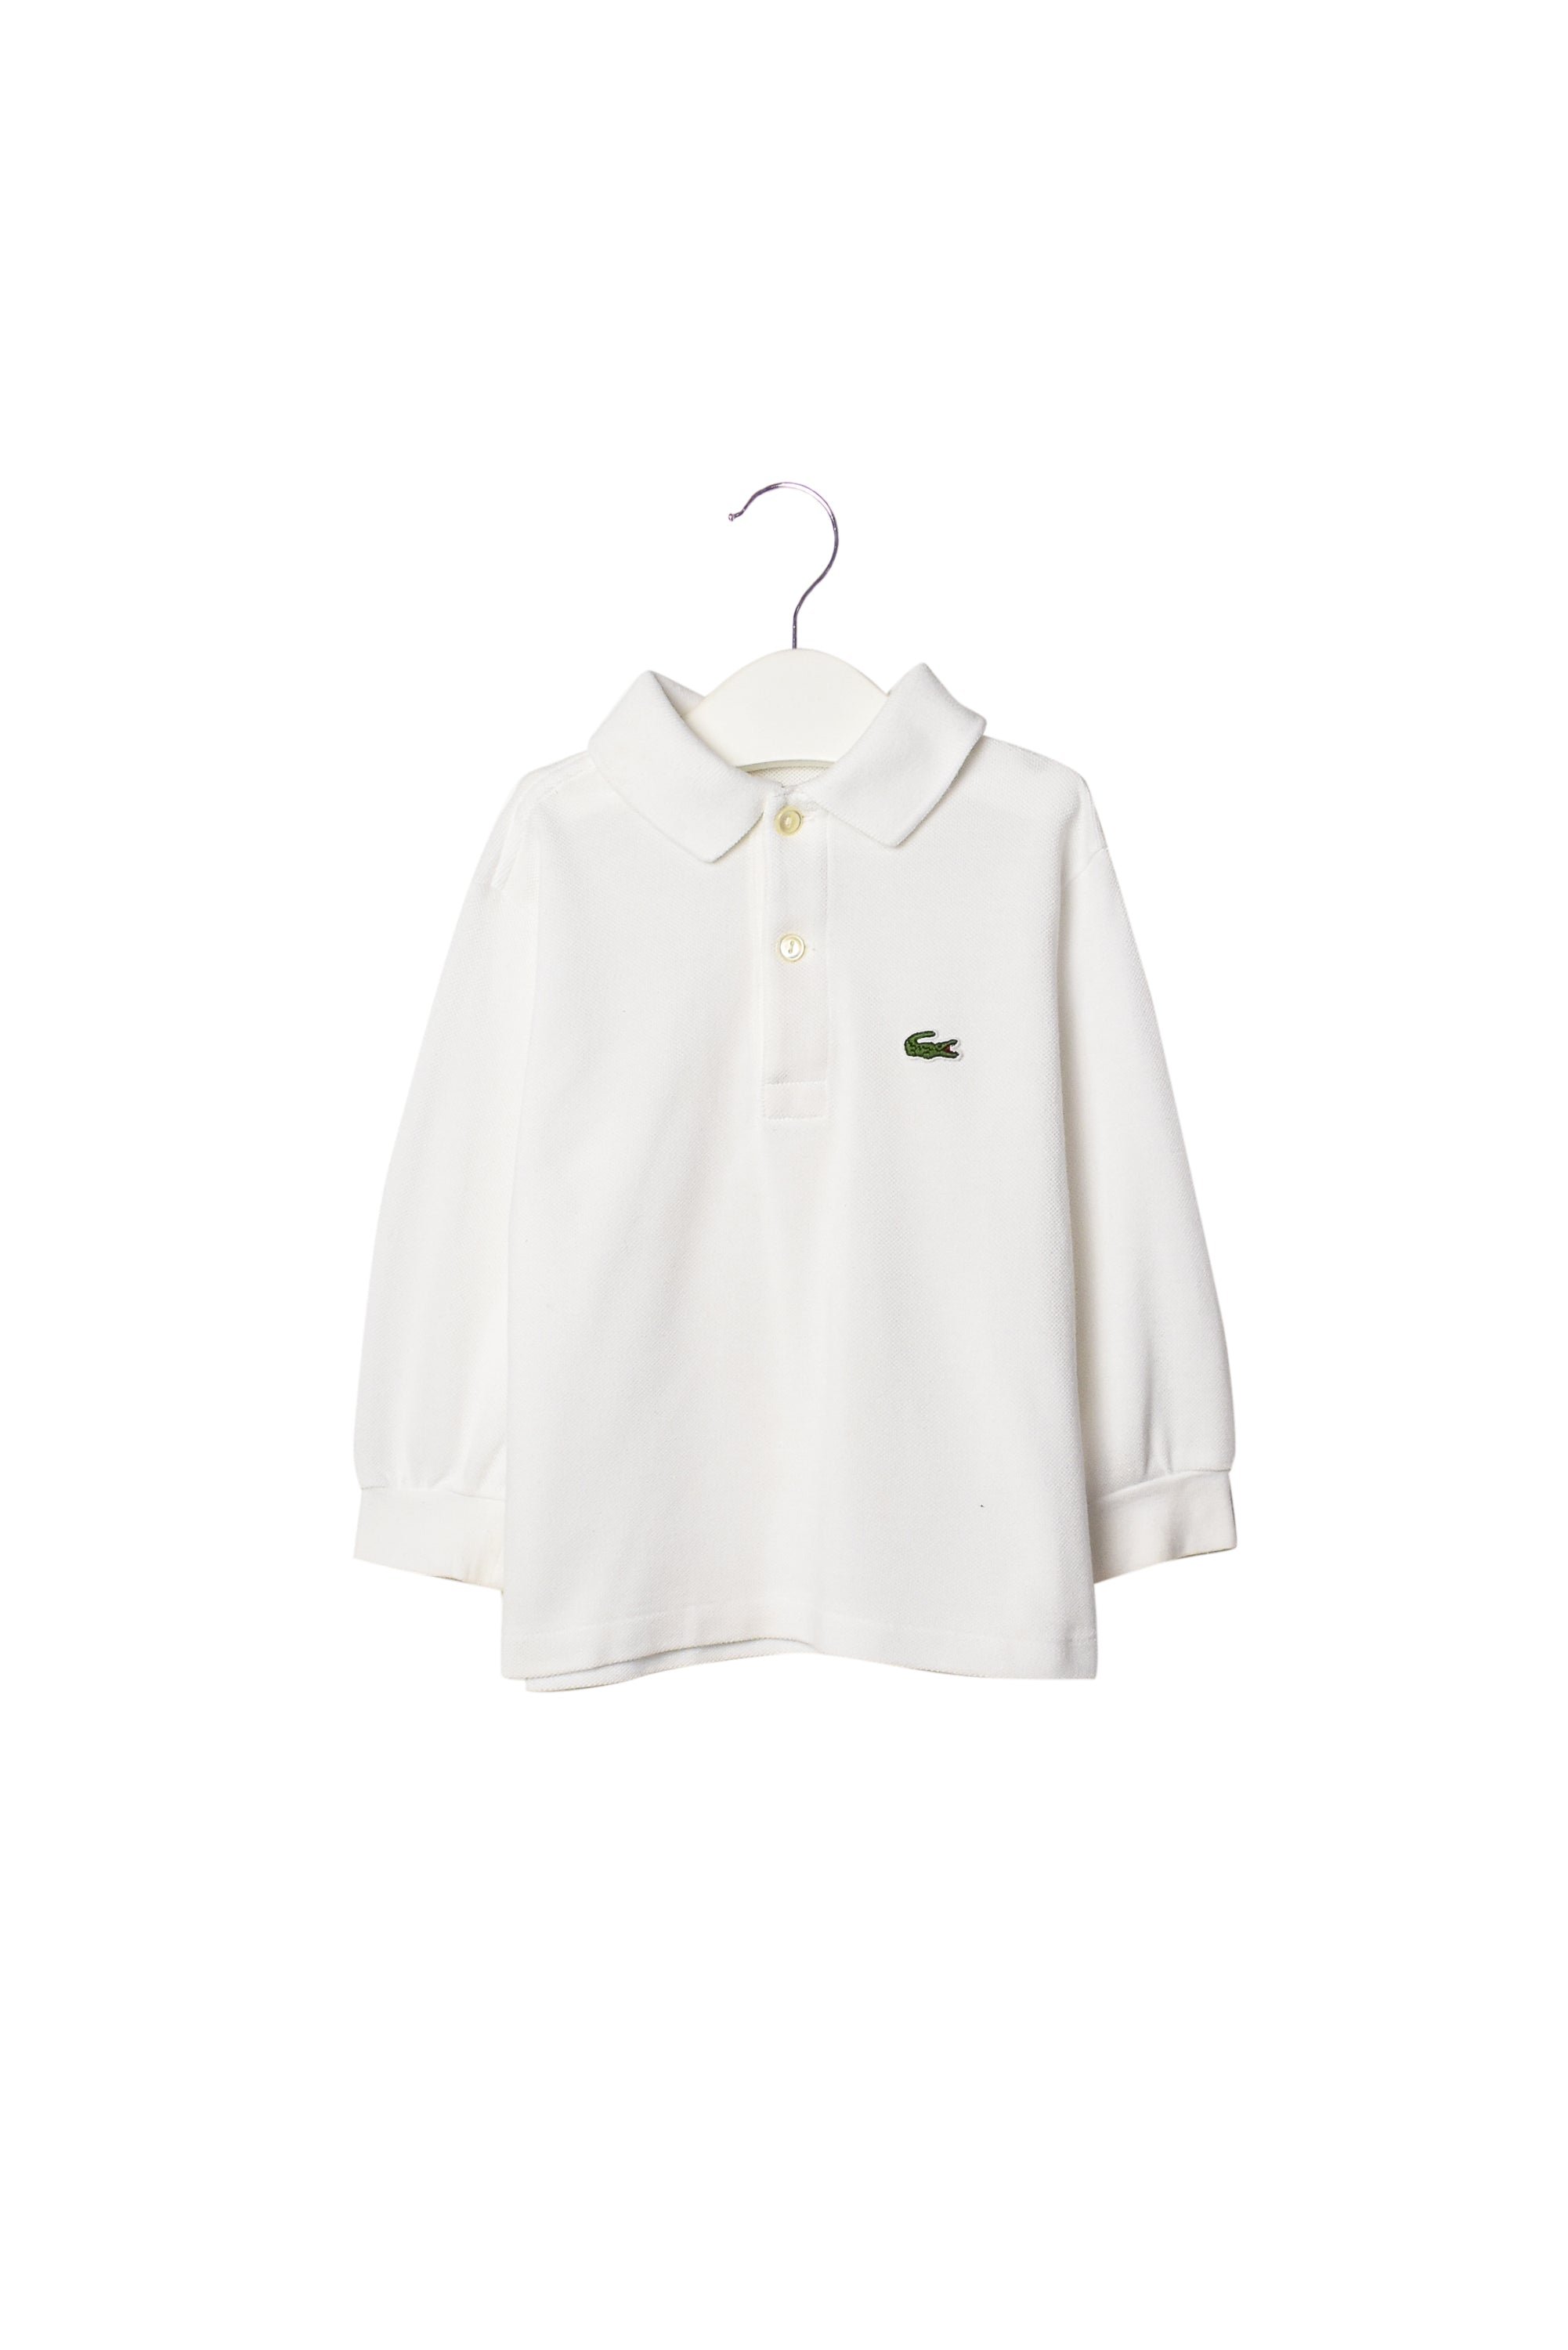 10006732 Lacoste Kids~ Polo 2T at Retykle